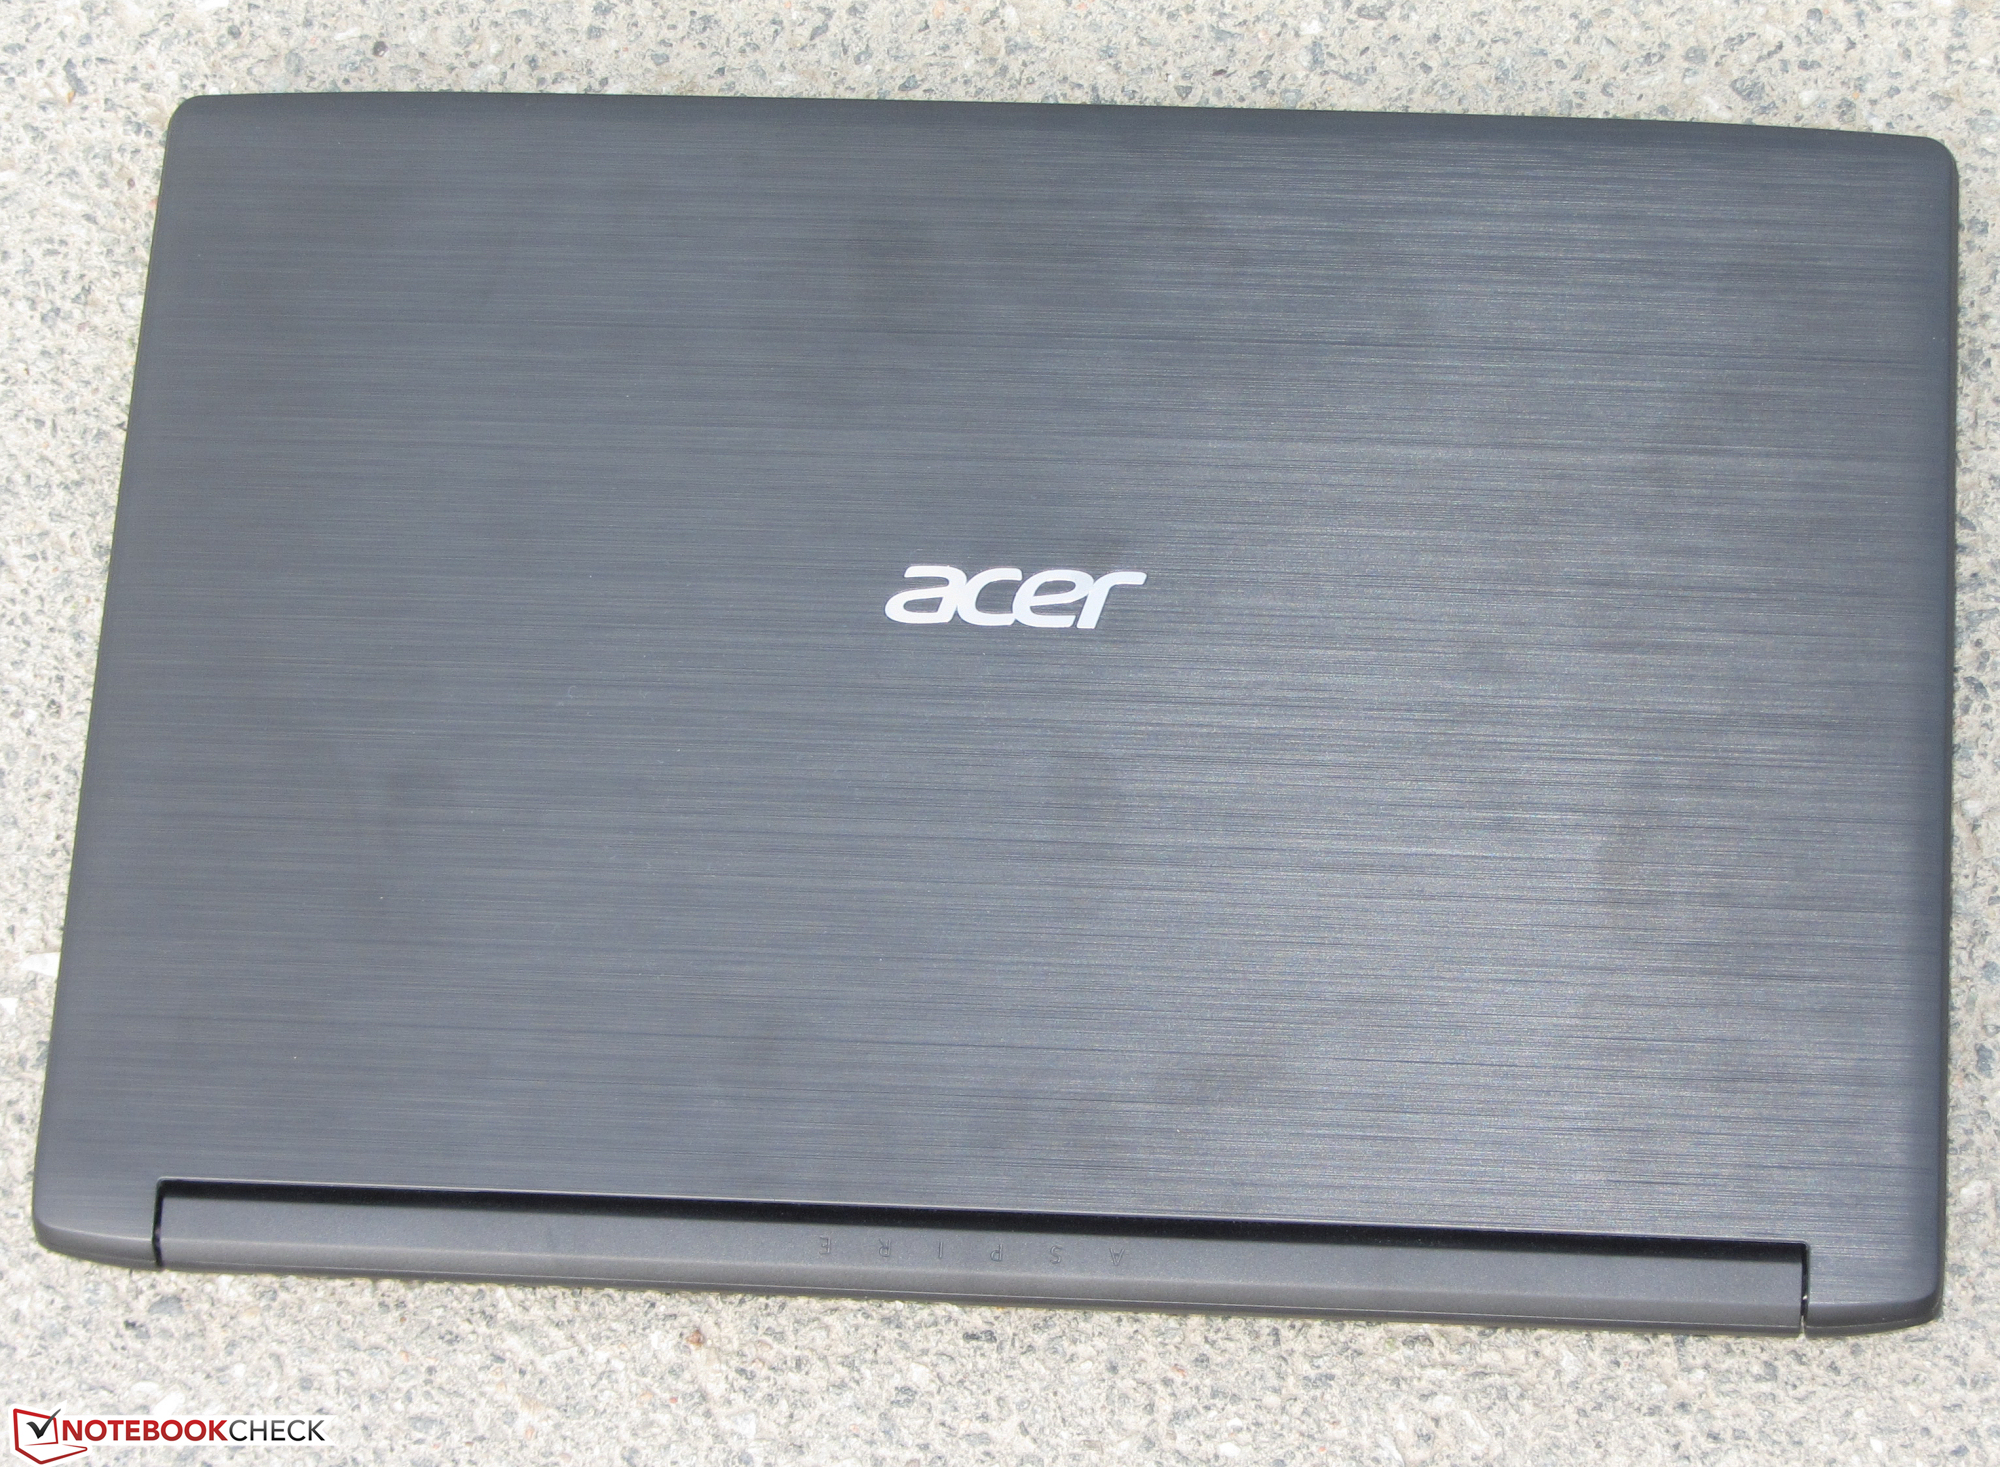 Driver for Acer Extensa 4010 Notebook AMD CPU